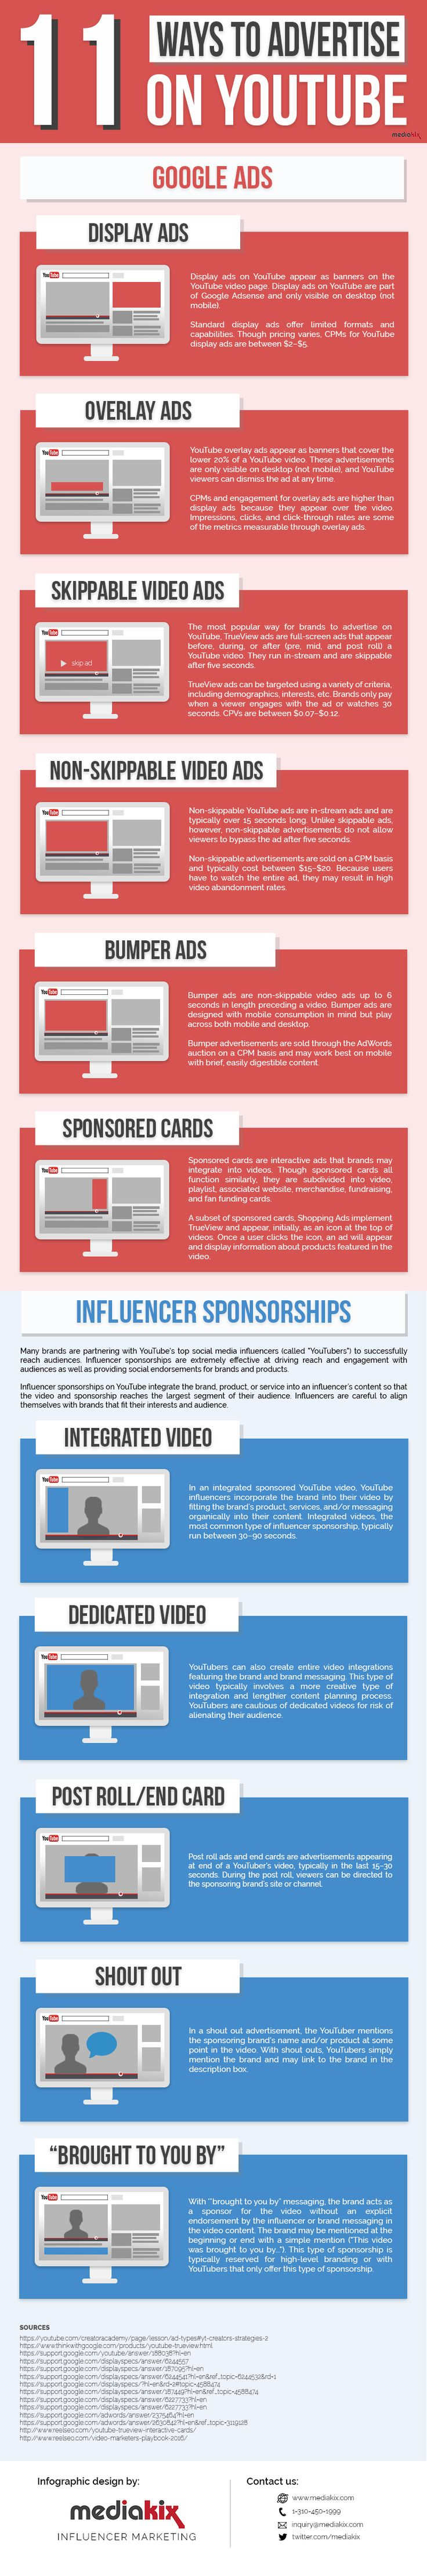 How To Advertise On YouTube Marketing Influencers YouTubers Infographic